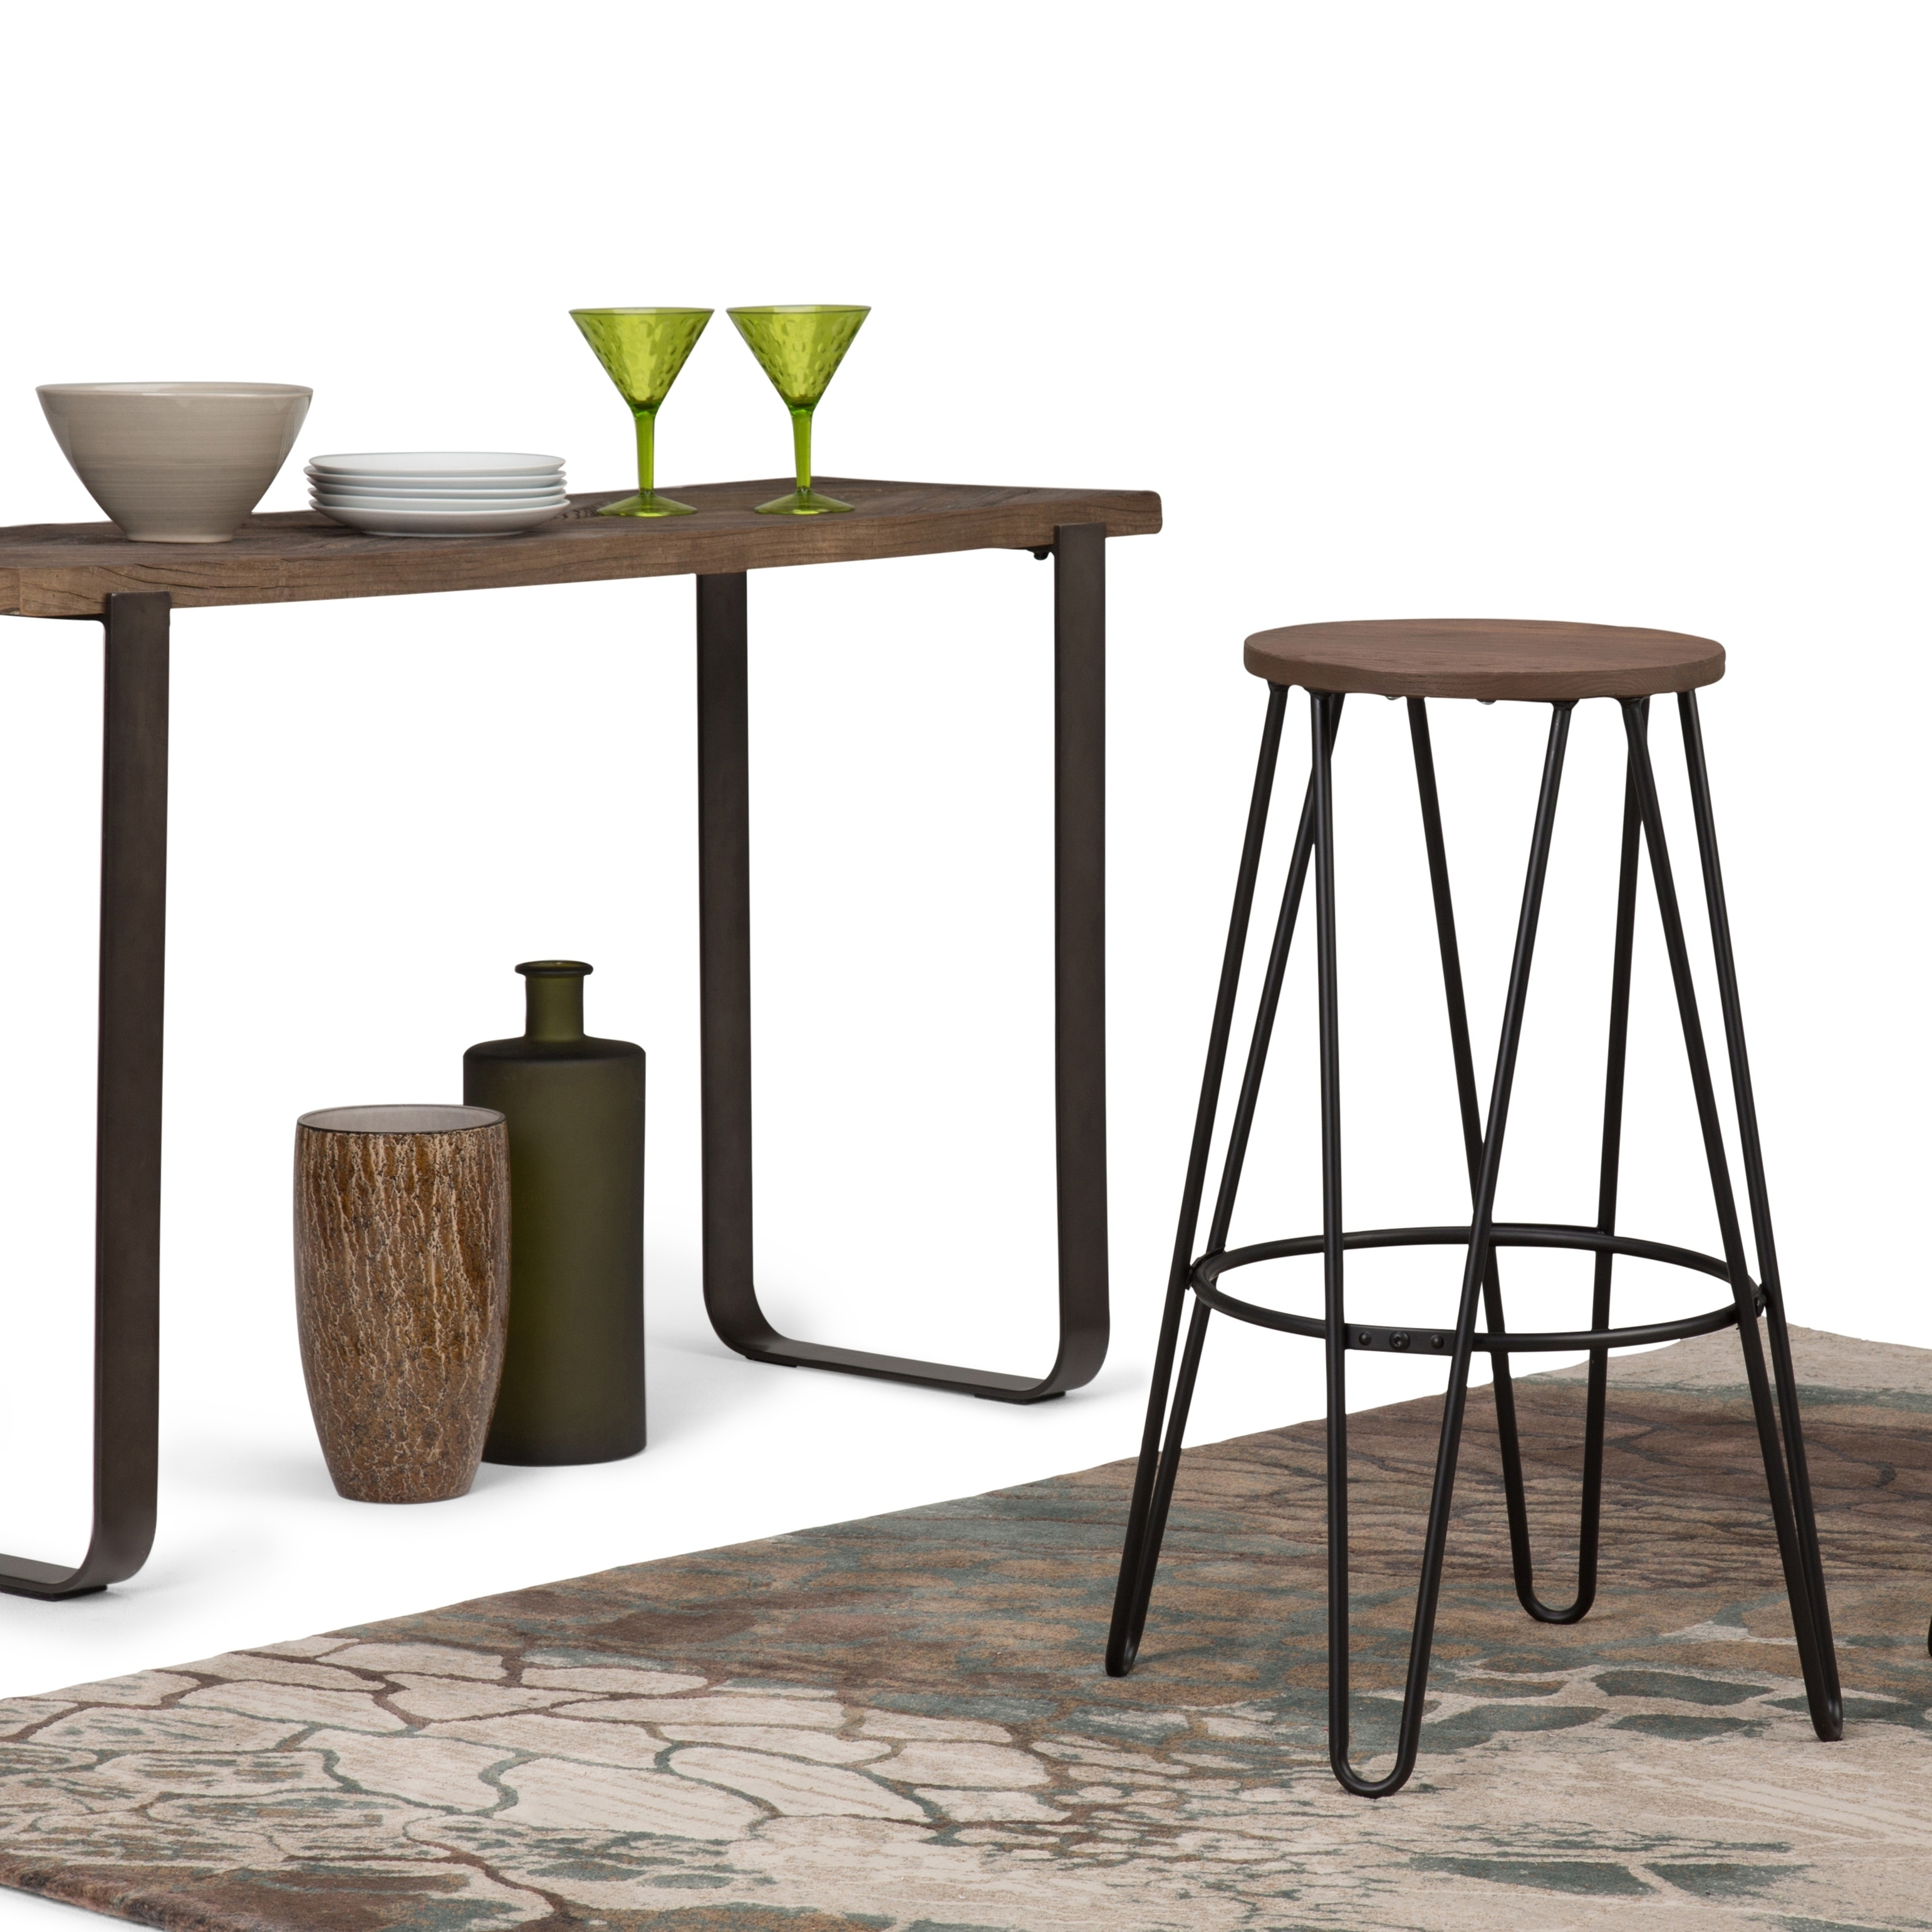 Incredible Wyndenhall Kendall Industrial Metal 30 Inch Bar Stool With Solid Wood Seat In Black Cocoa Brown Theyellowbook Wood Chair Design Ideas Theyellowbookinfo